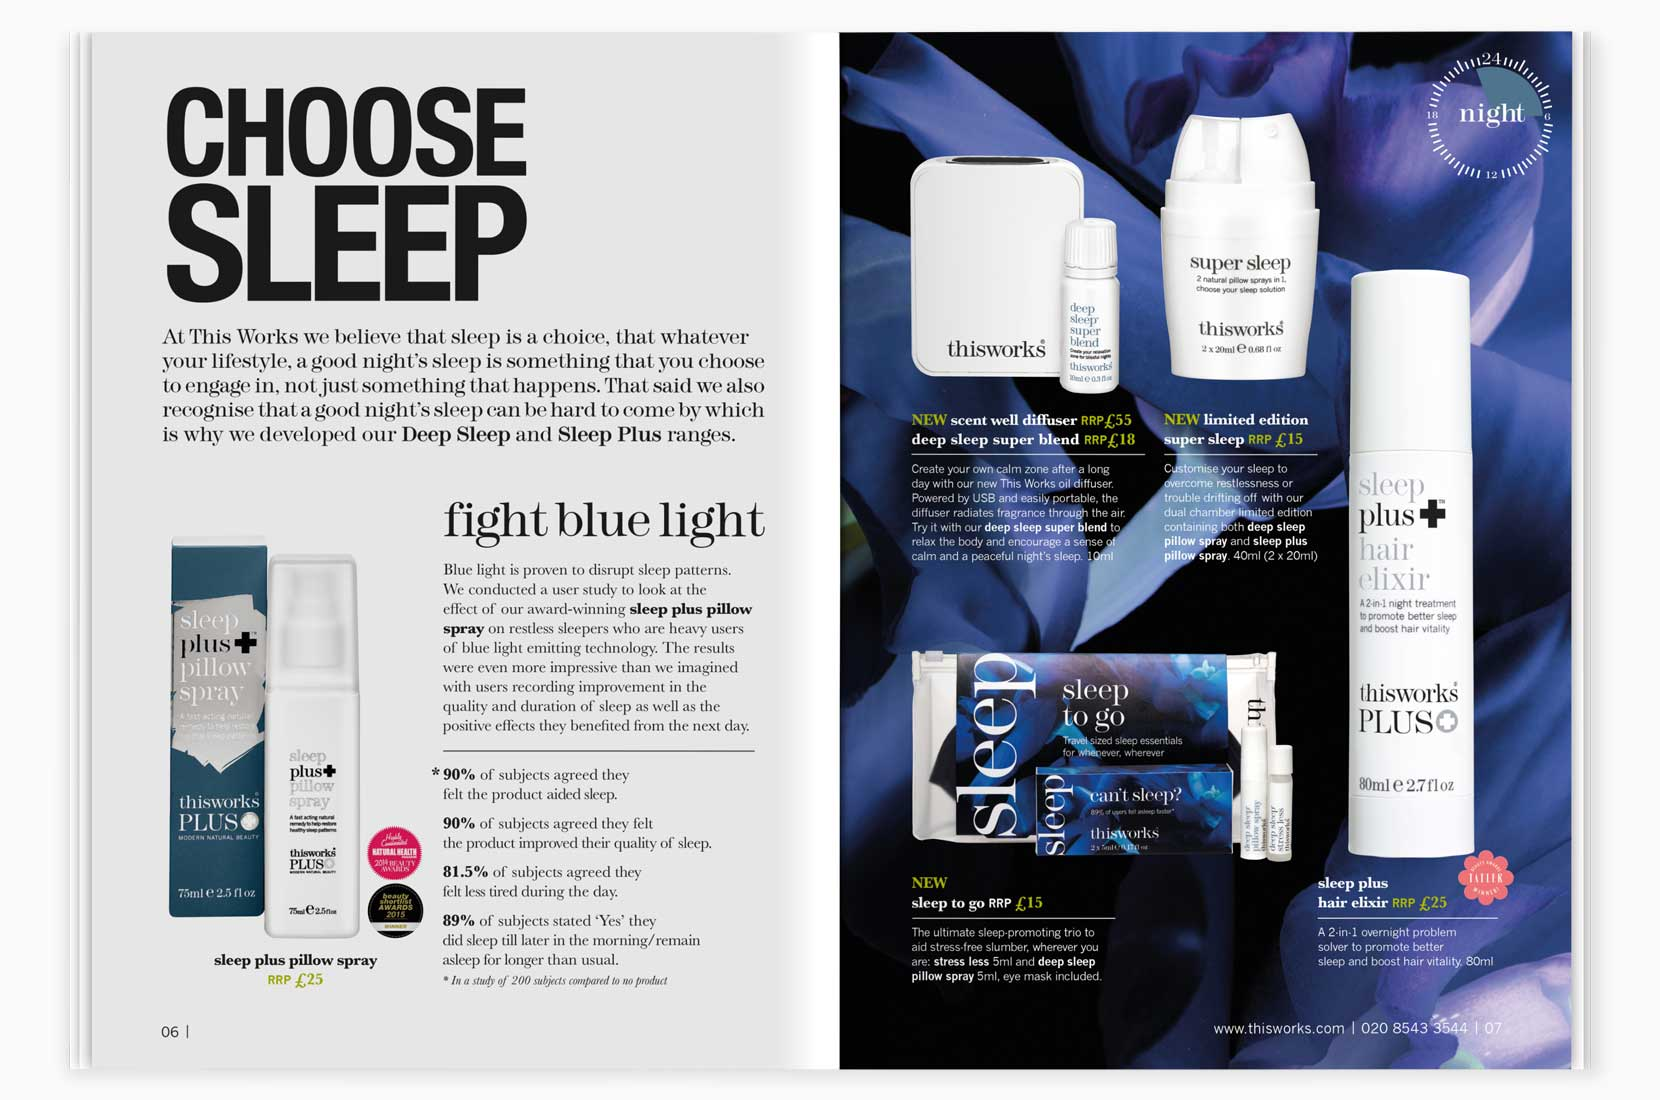 This Works Autumn Mailer 2016 – New Sleep Product Spread